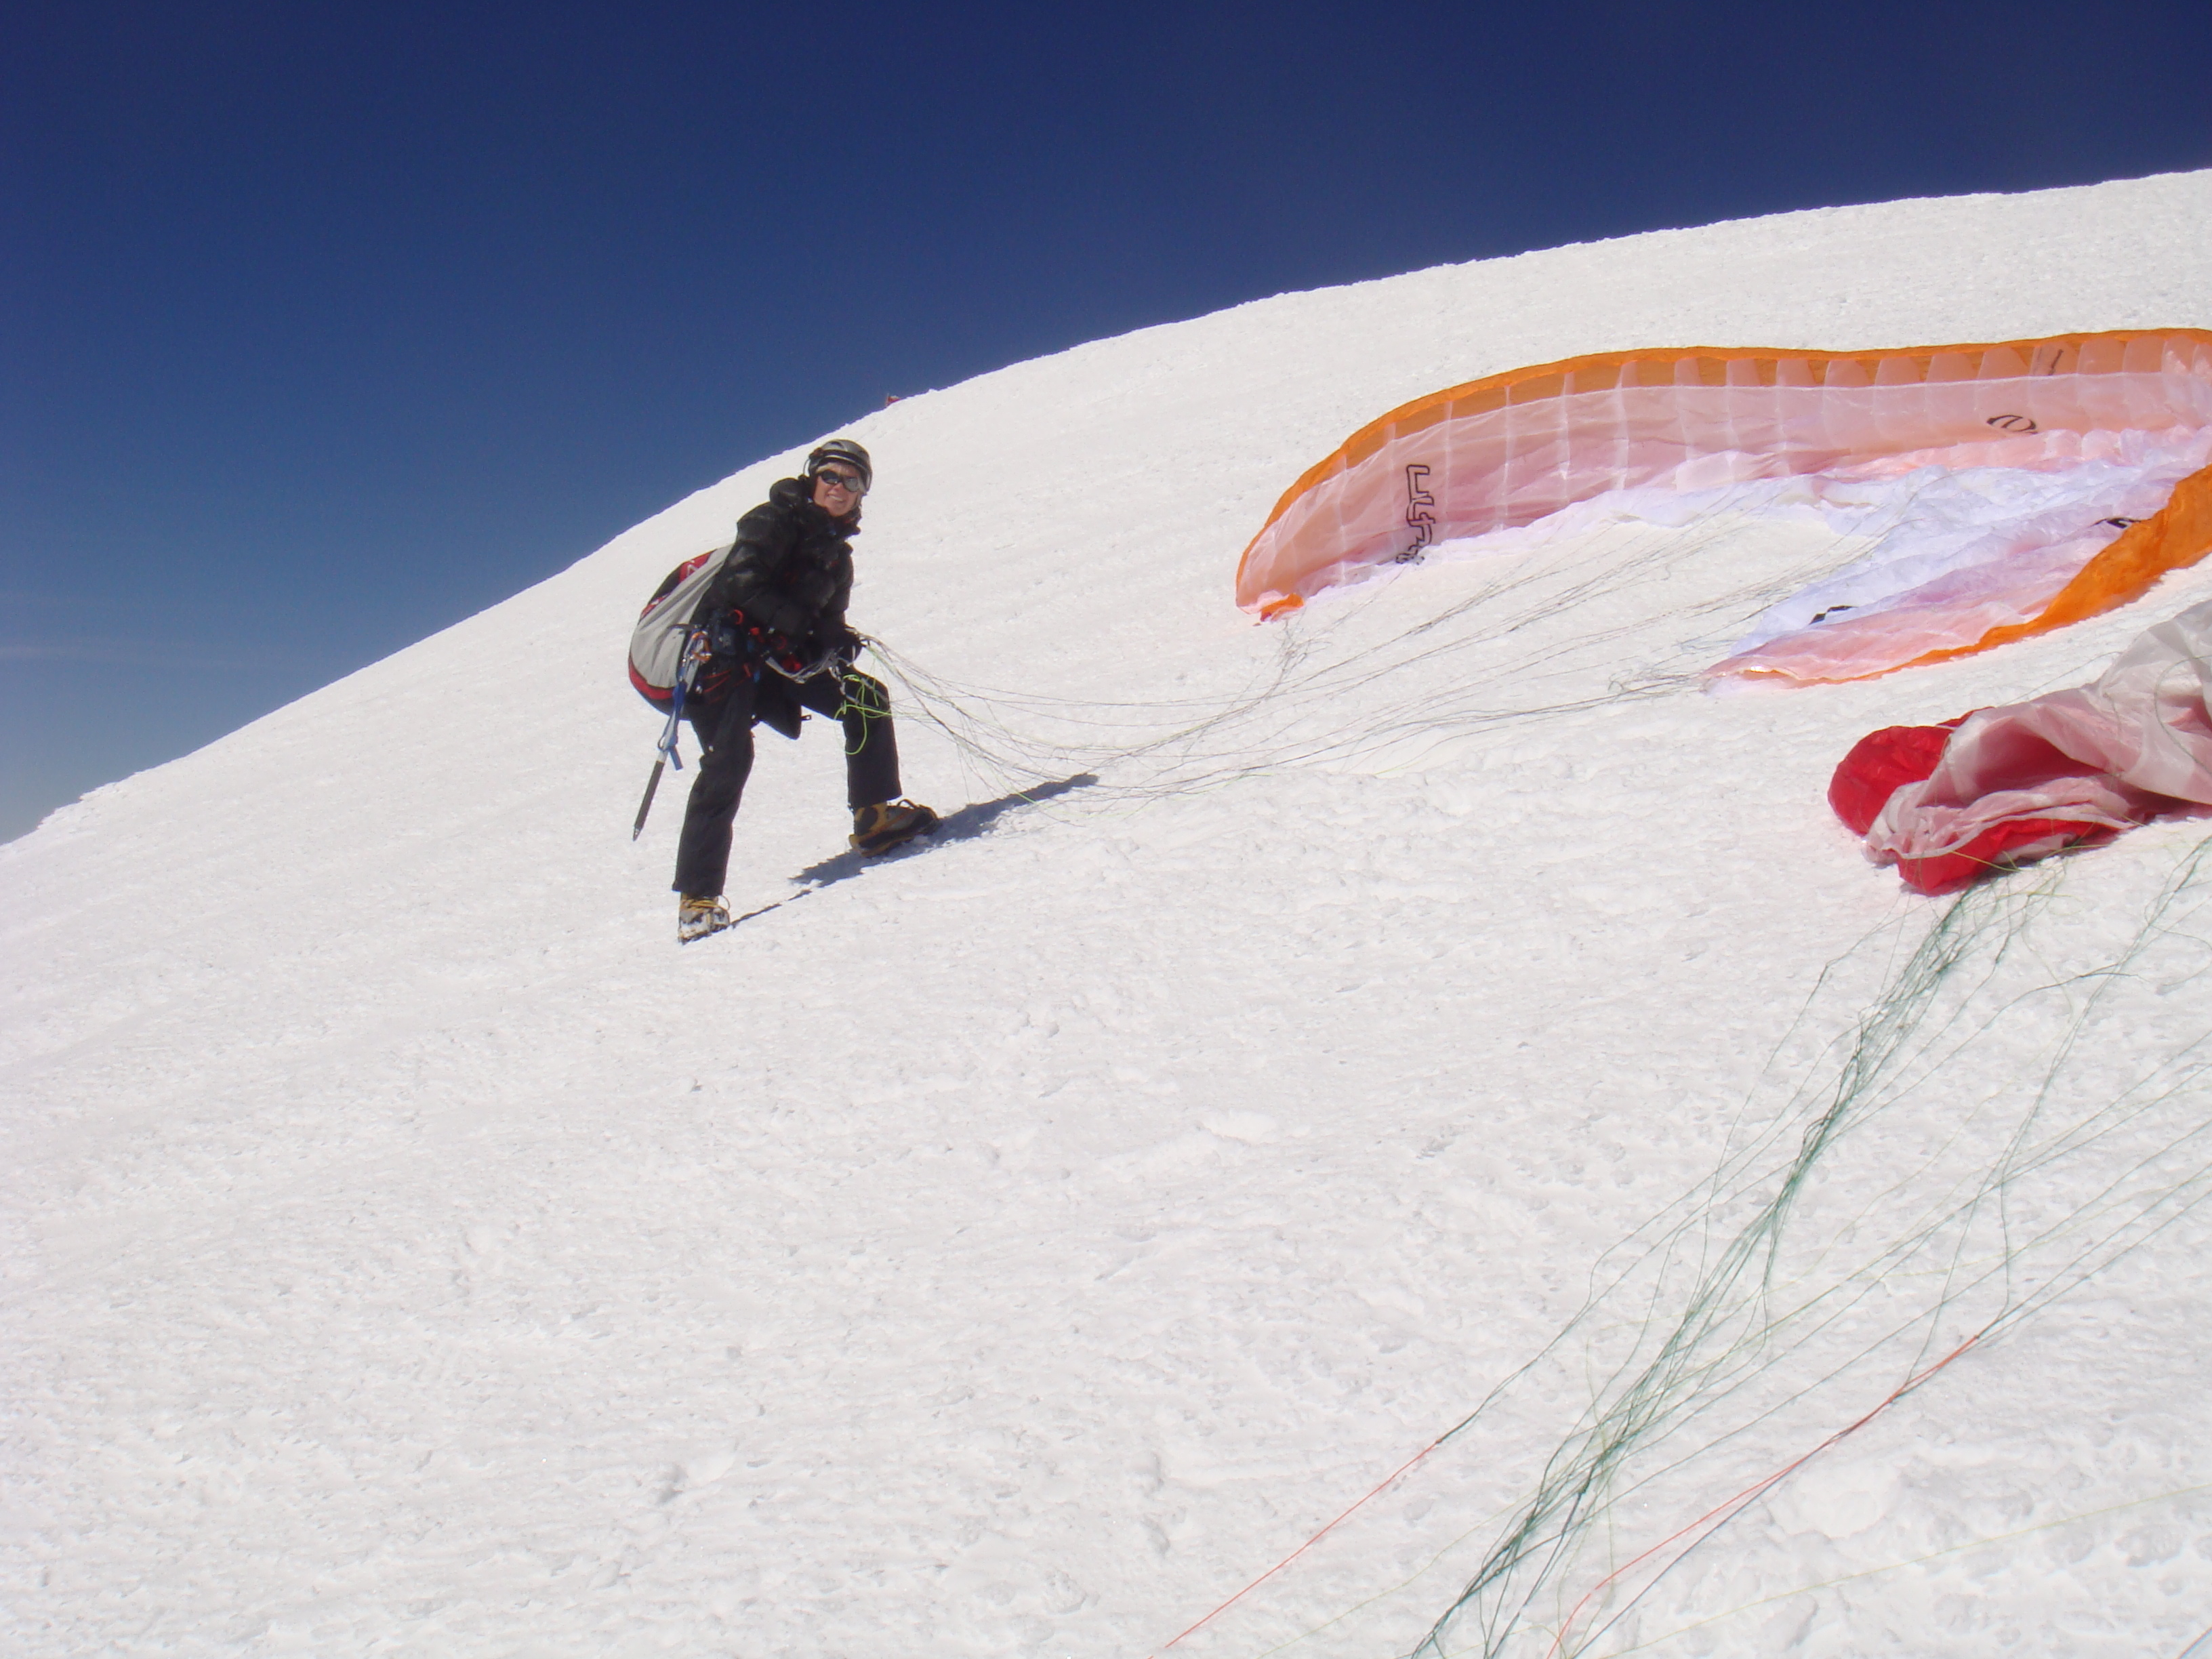 Squash Falconer on her plans to paraglide off Everest